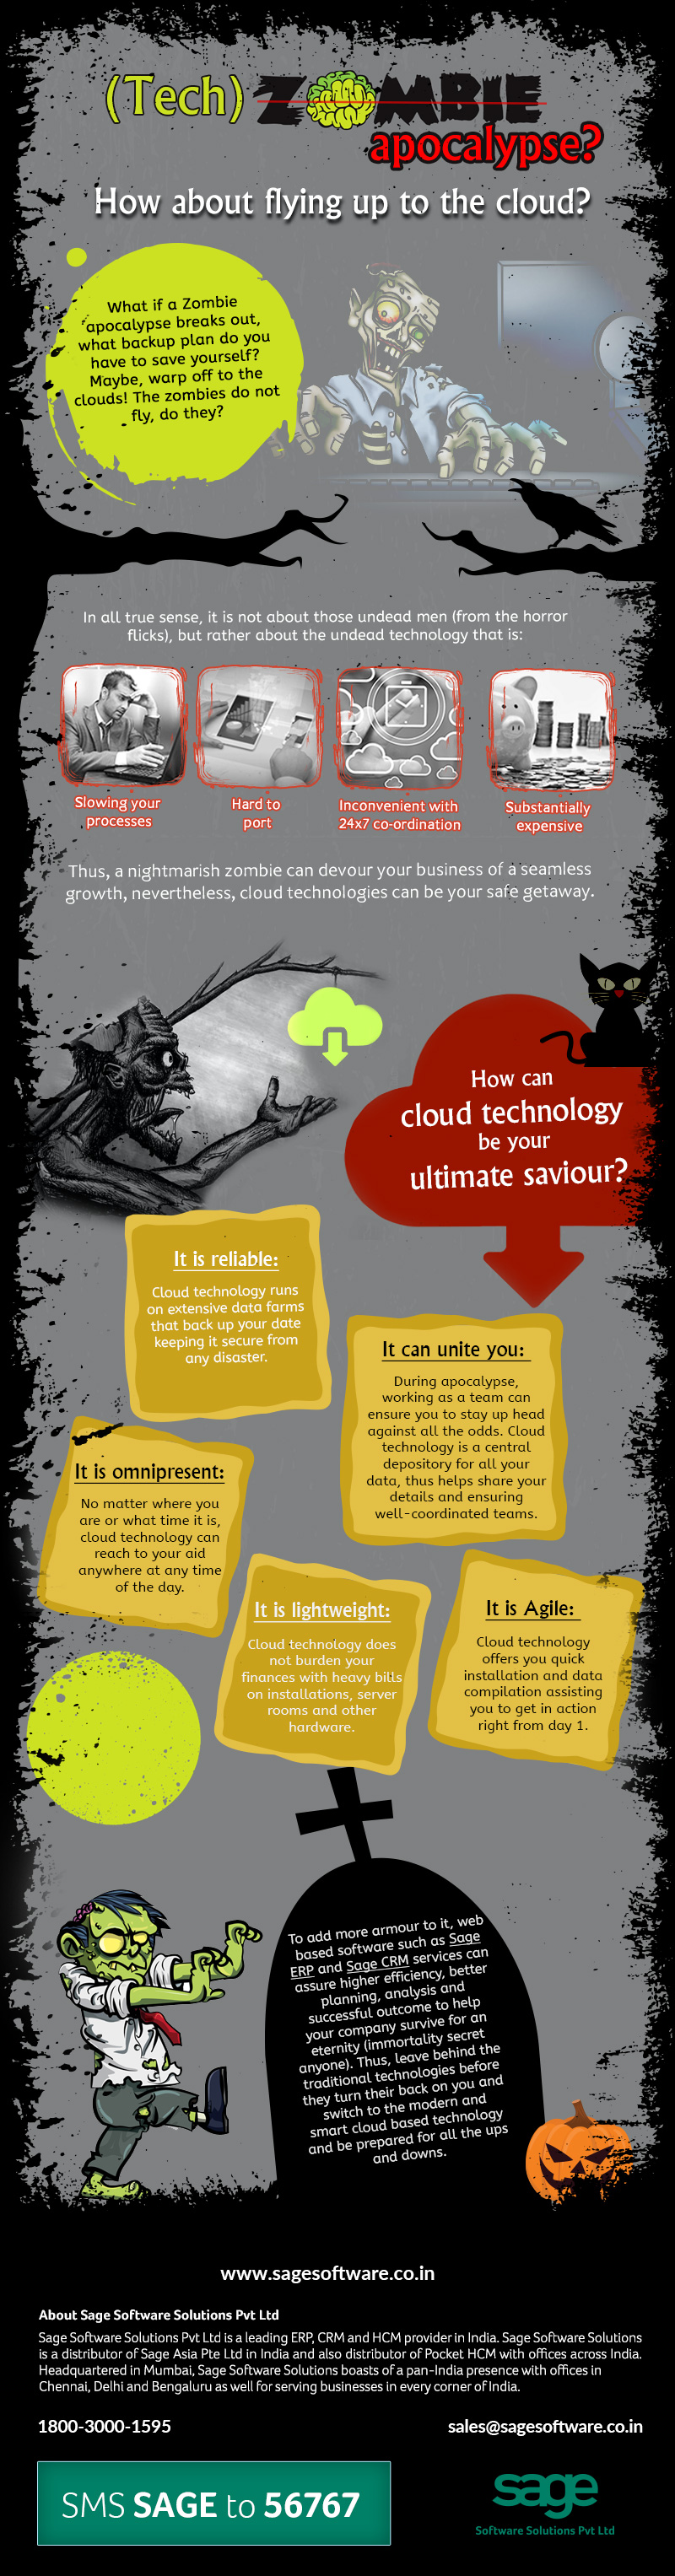 (Zombie) Tech apocalypse? How about flying up to the cloud?